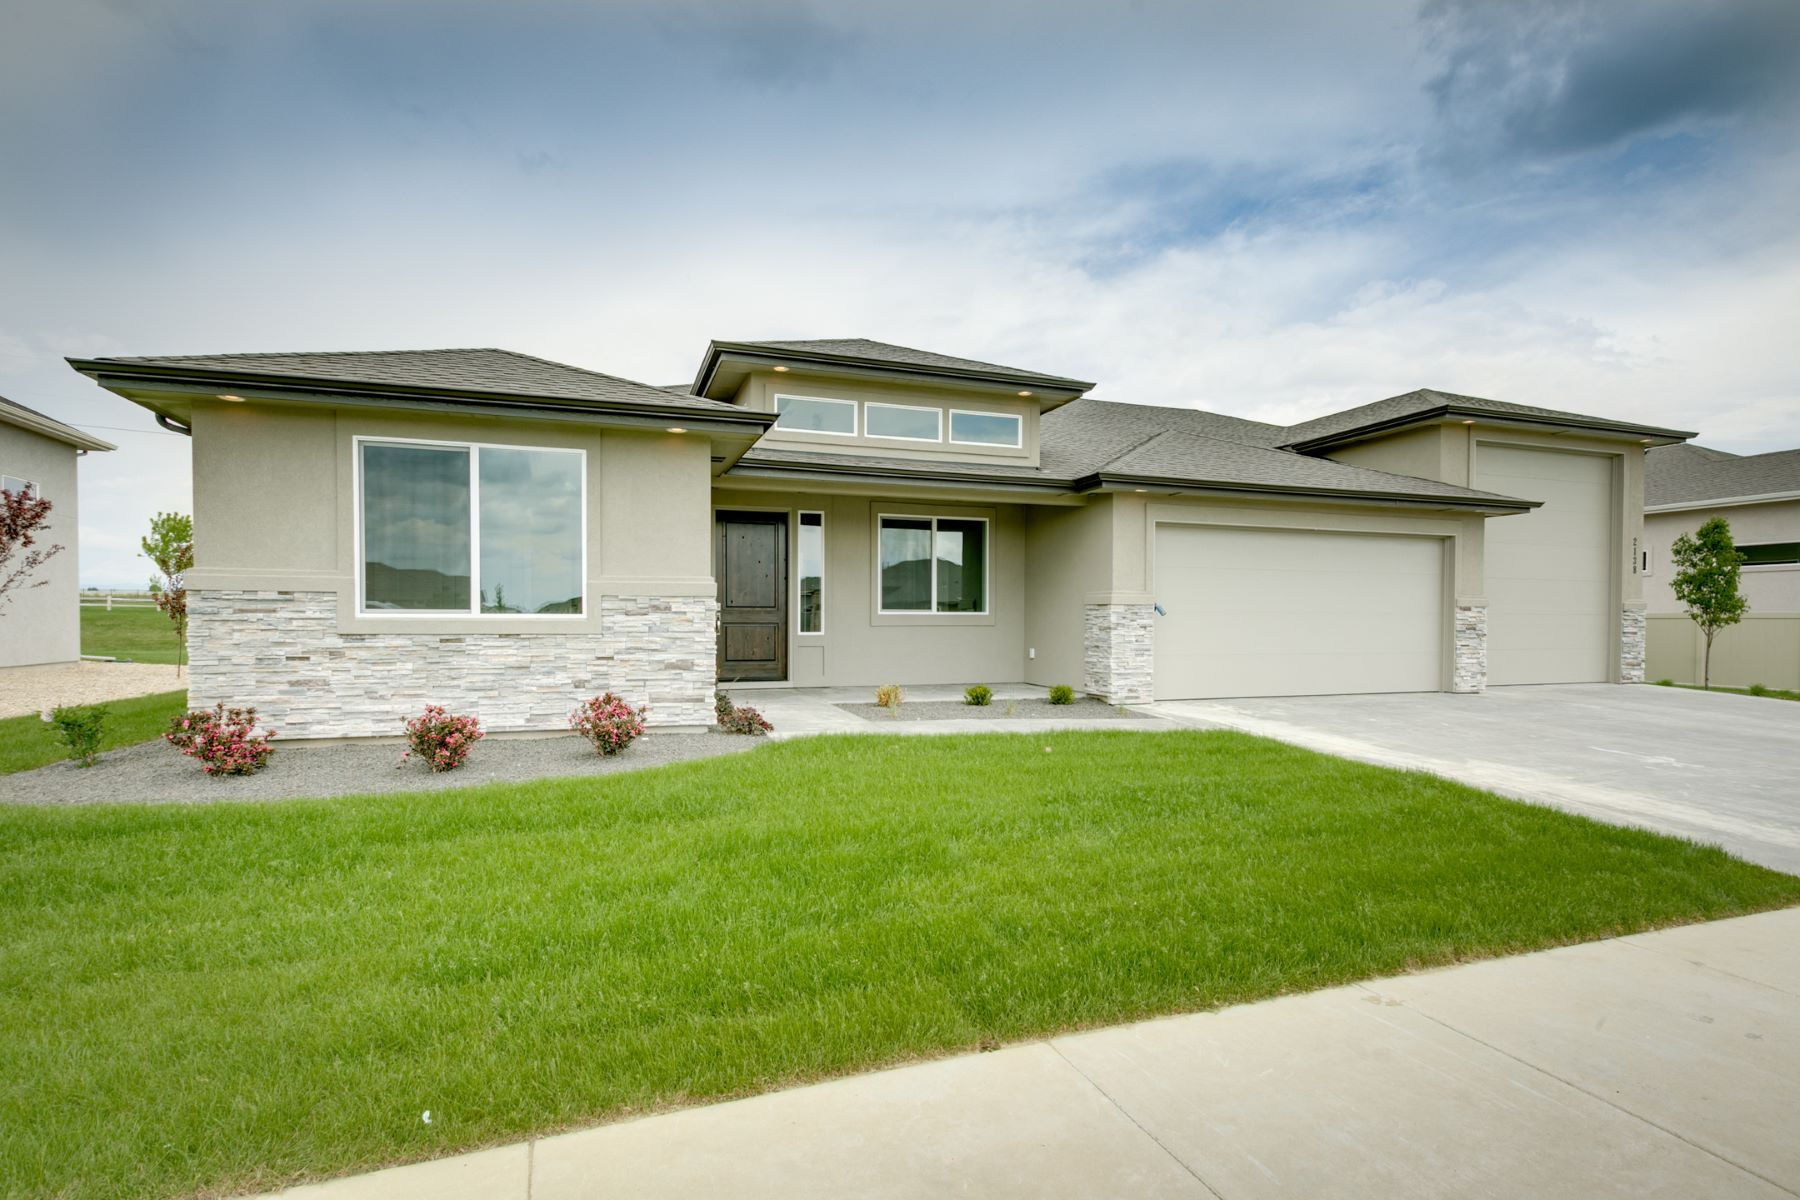 Single Family Homes for Sale at 2332 Finsbury Way, Star 2332 N Finsbury Way Star, Idaho 83669 United States